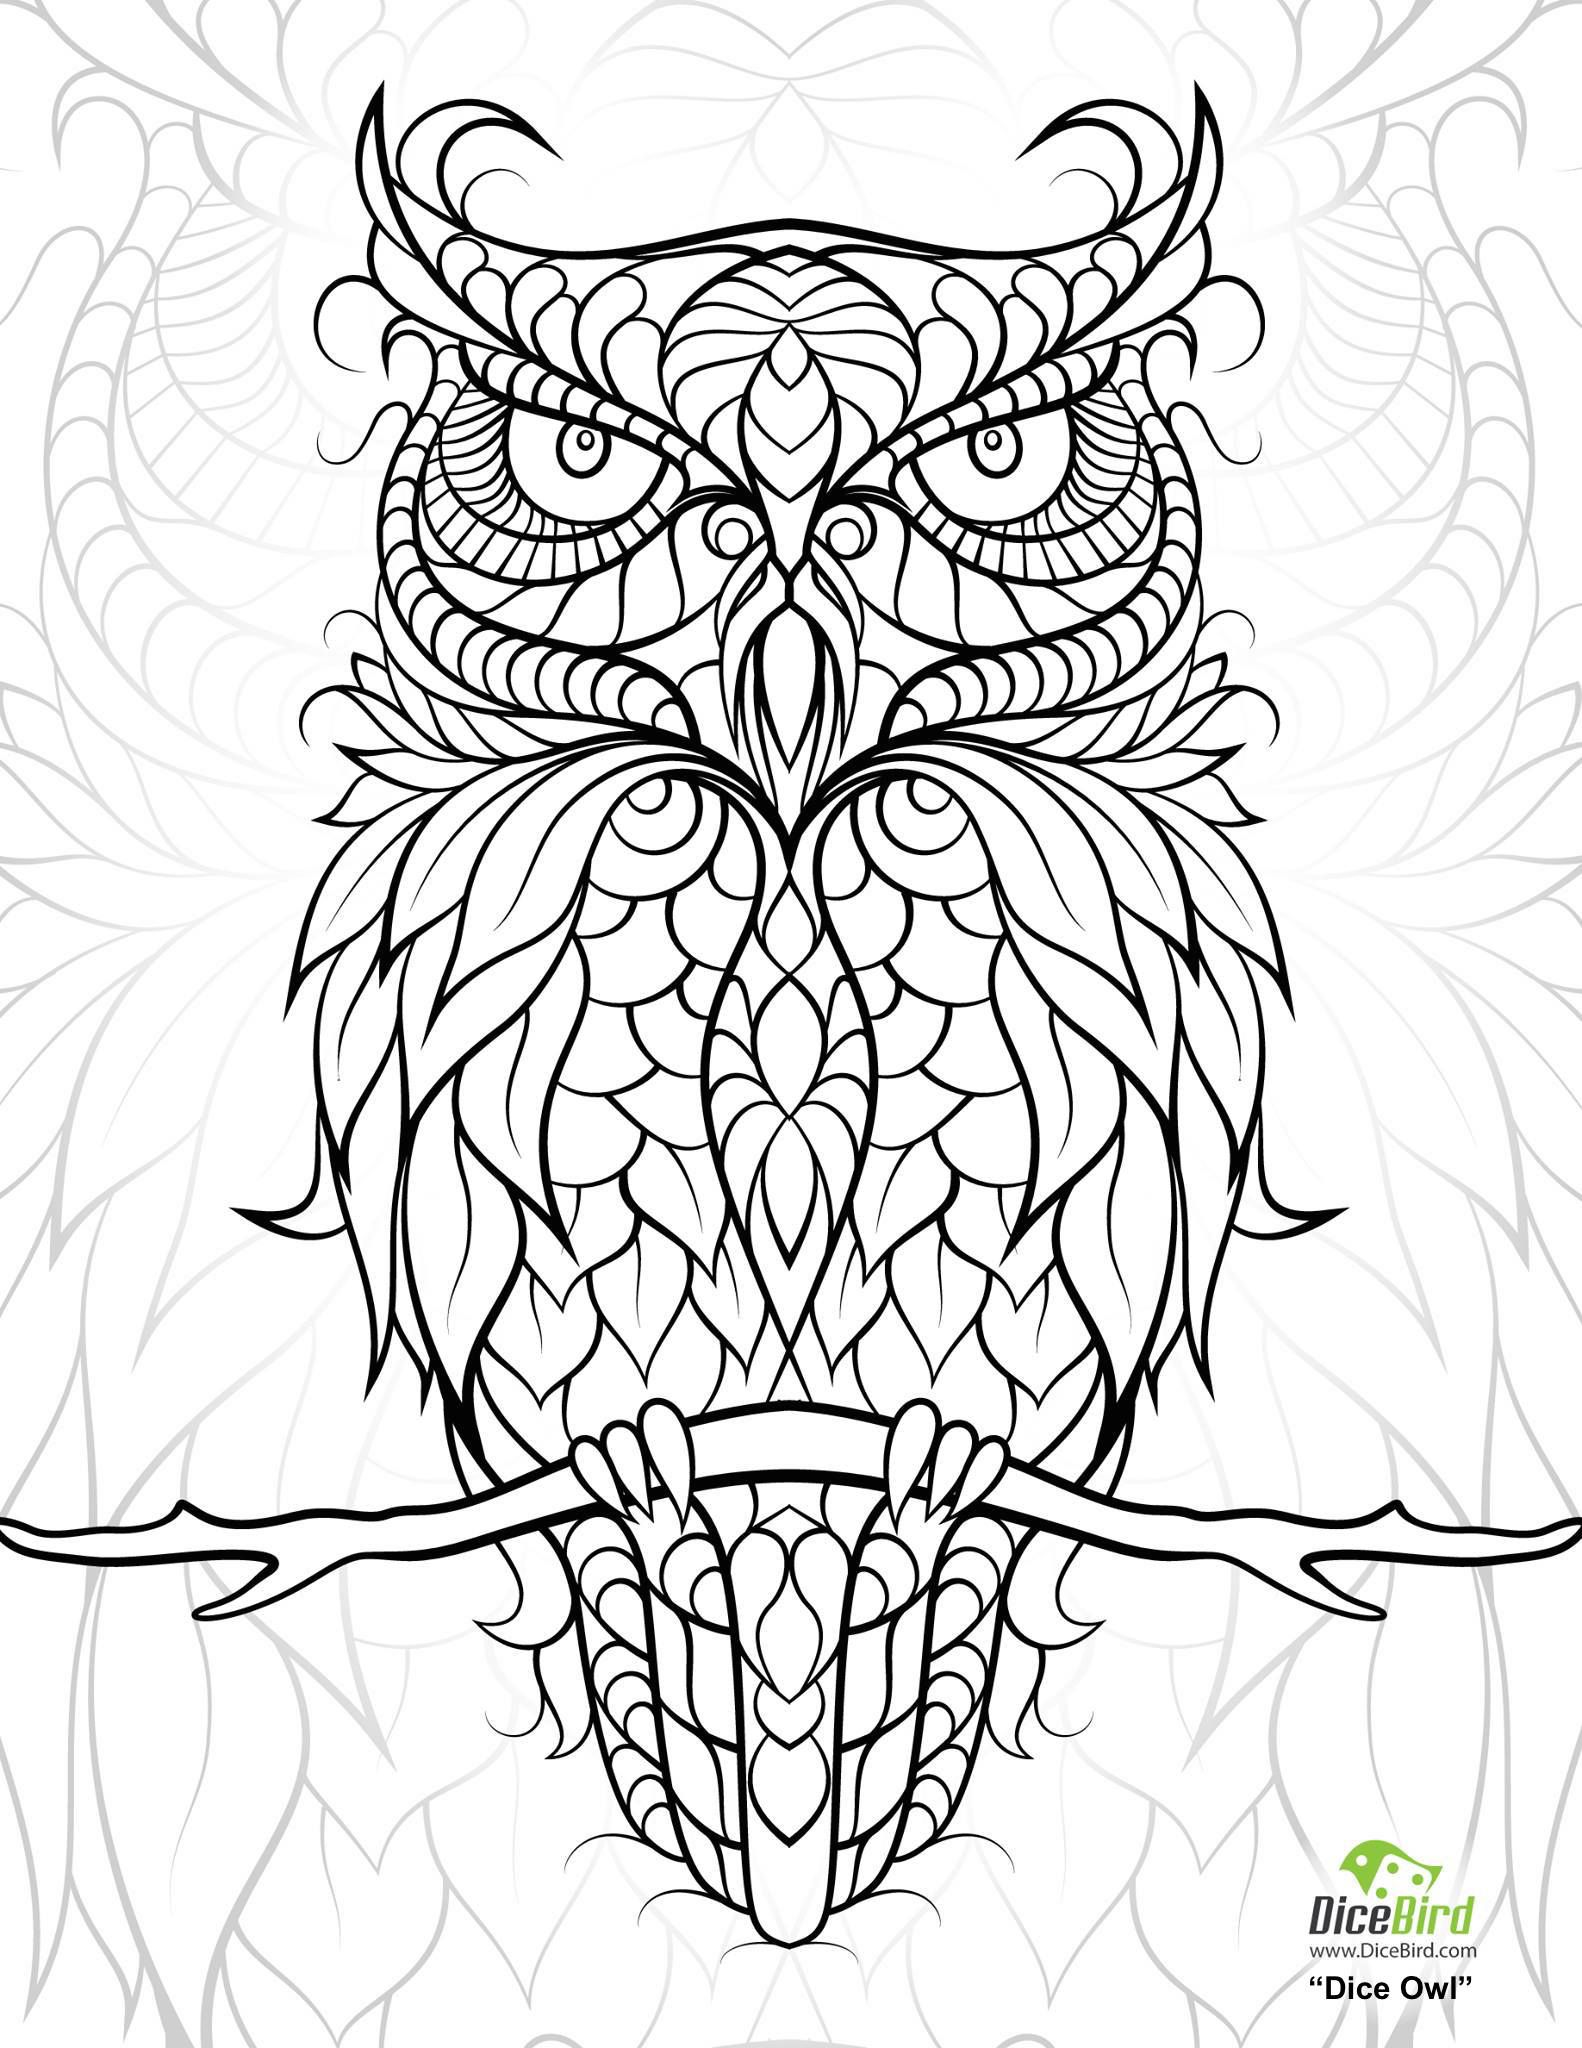 diceowl-free printable adult coloring pages | Adult ...